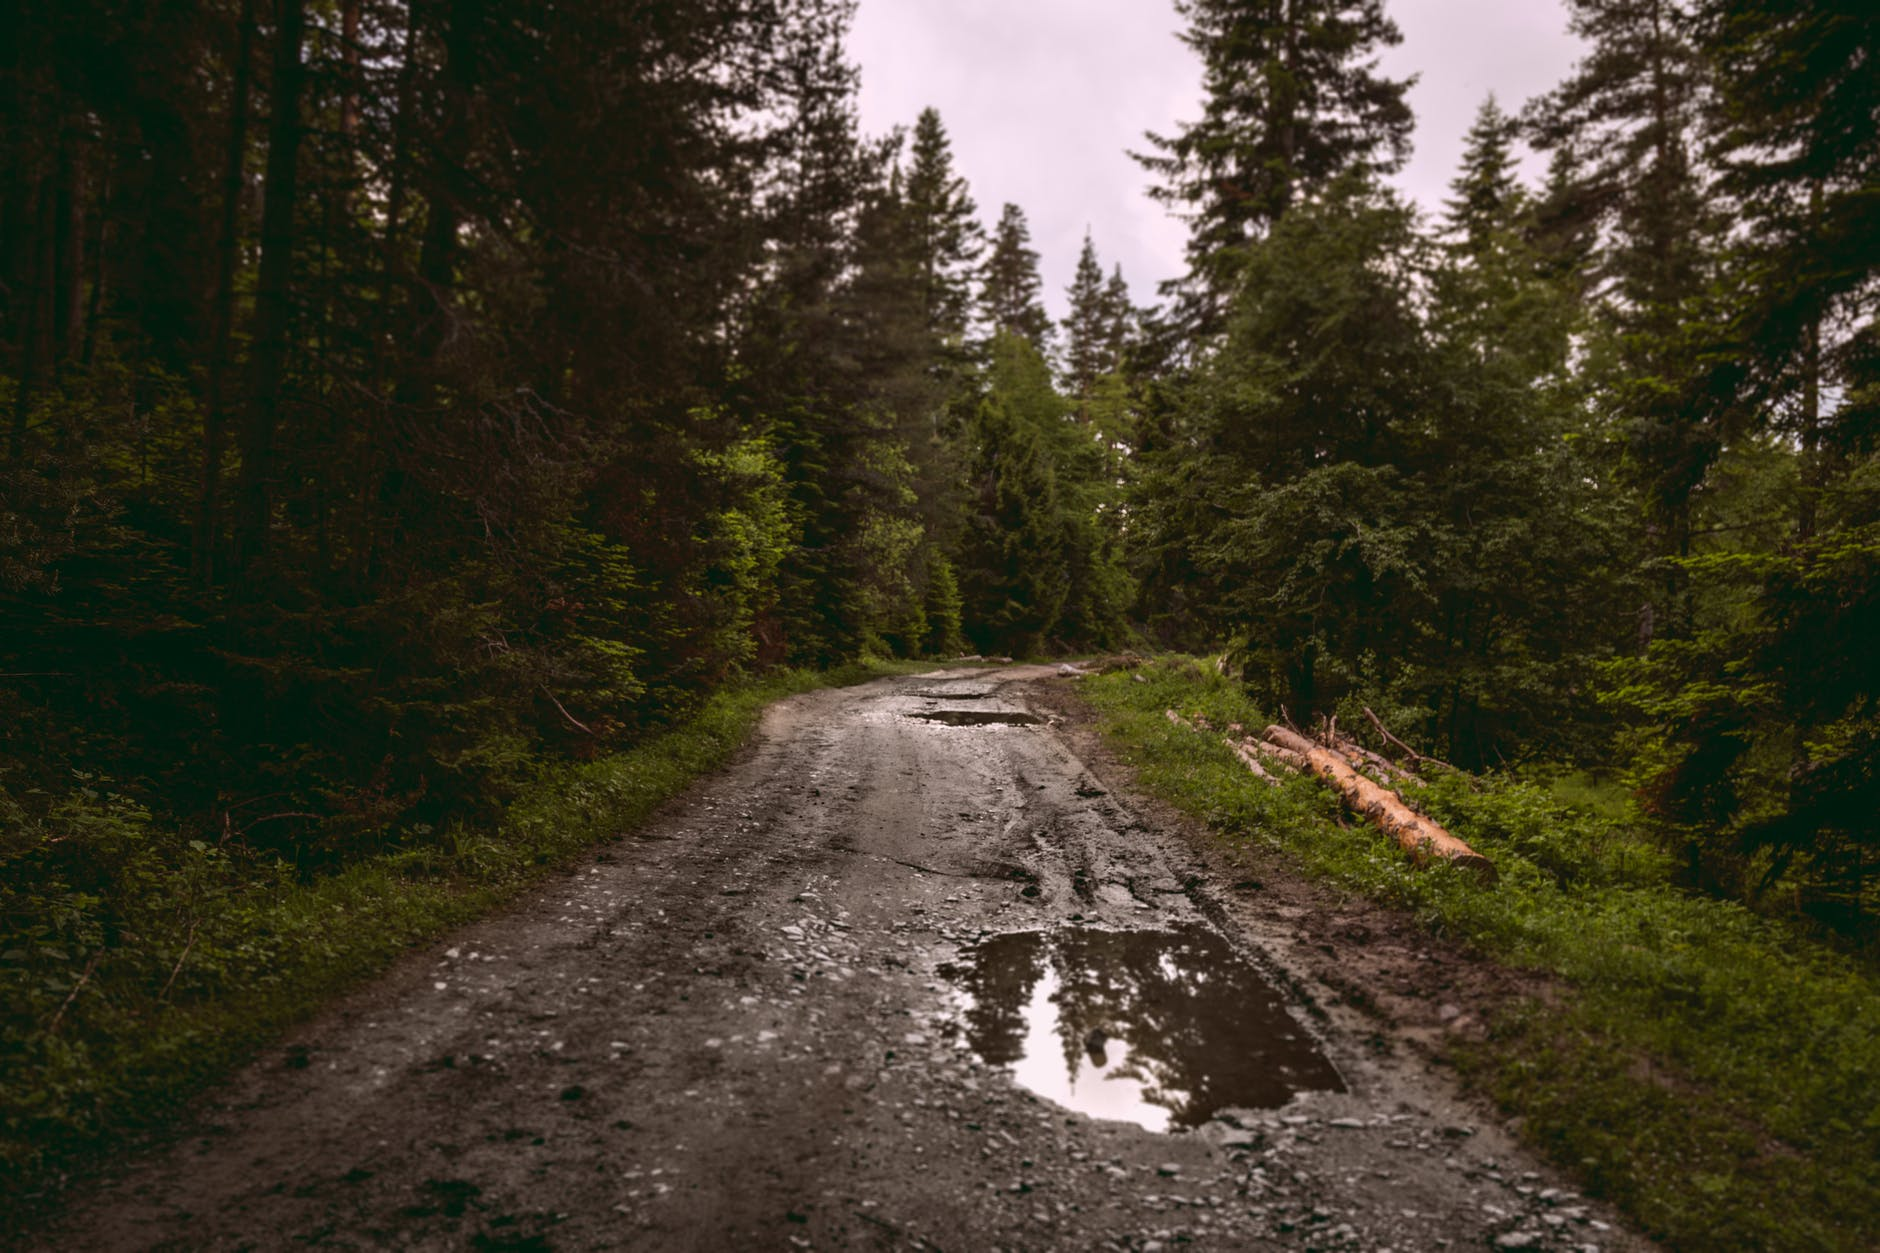 narrow road with puddles after rain